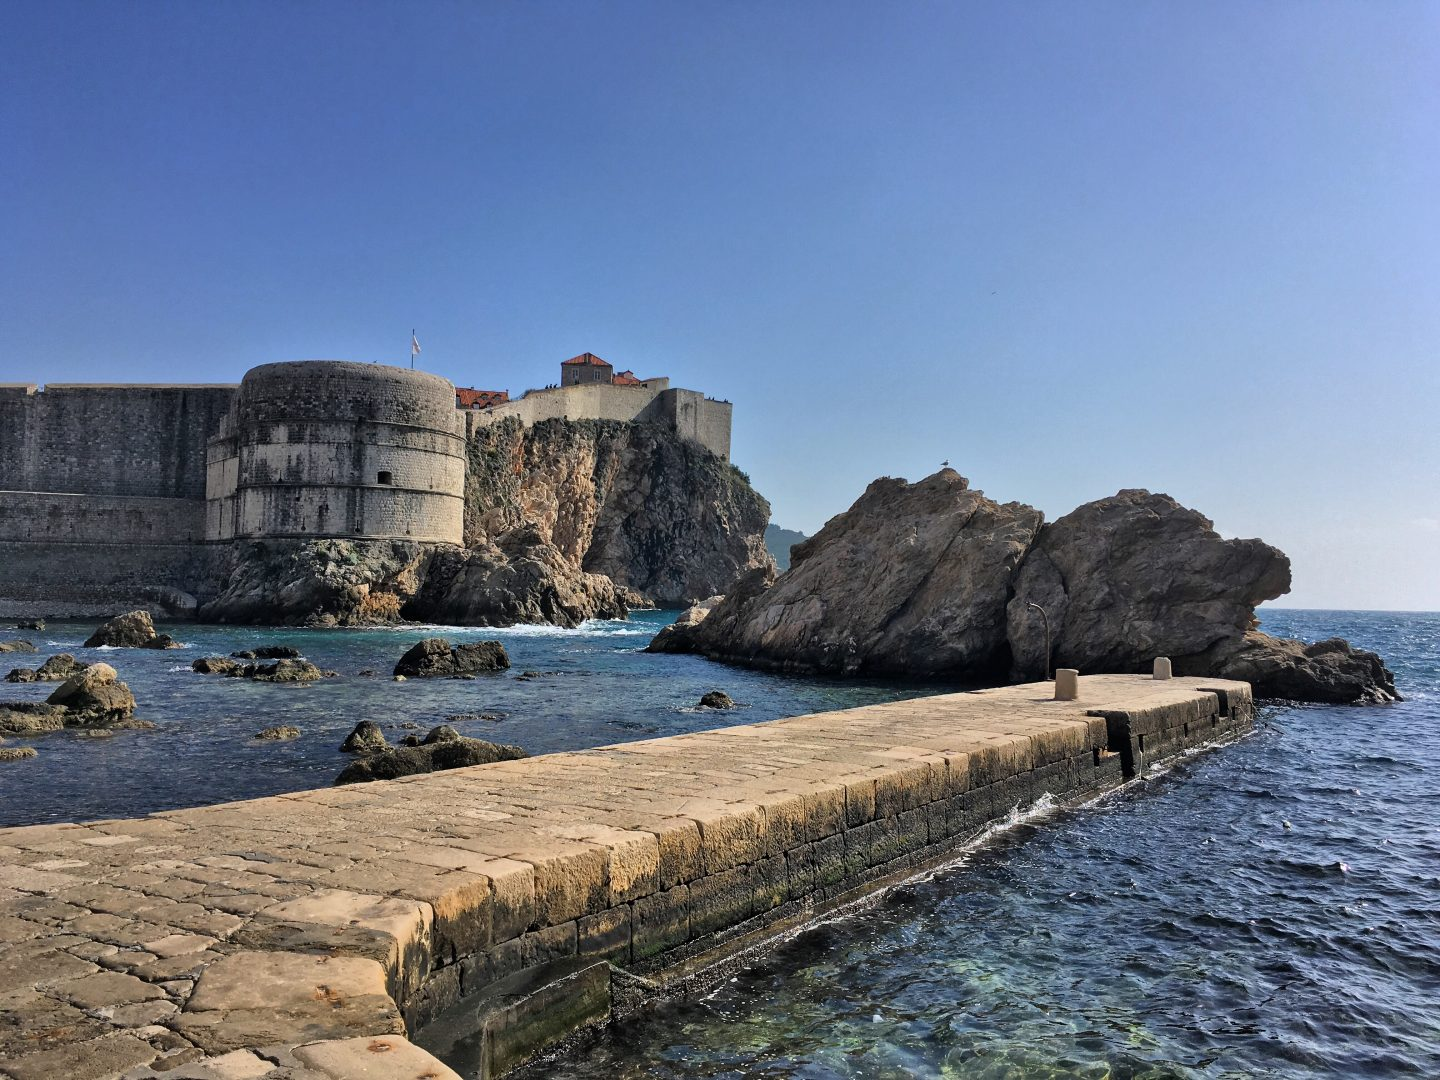 In Pictures: 48 Hours in Dubrovnik